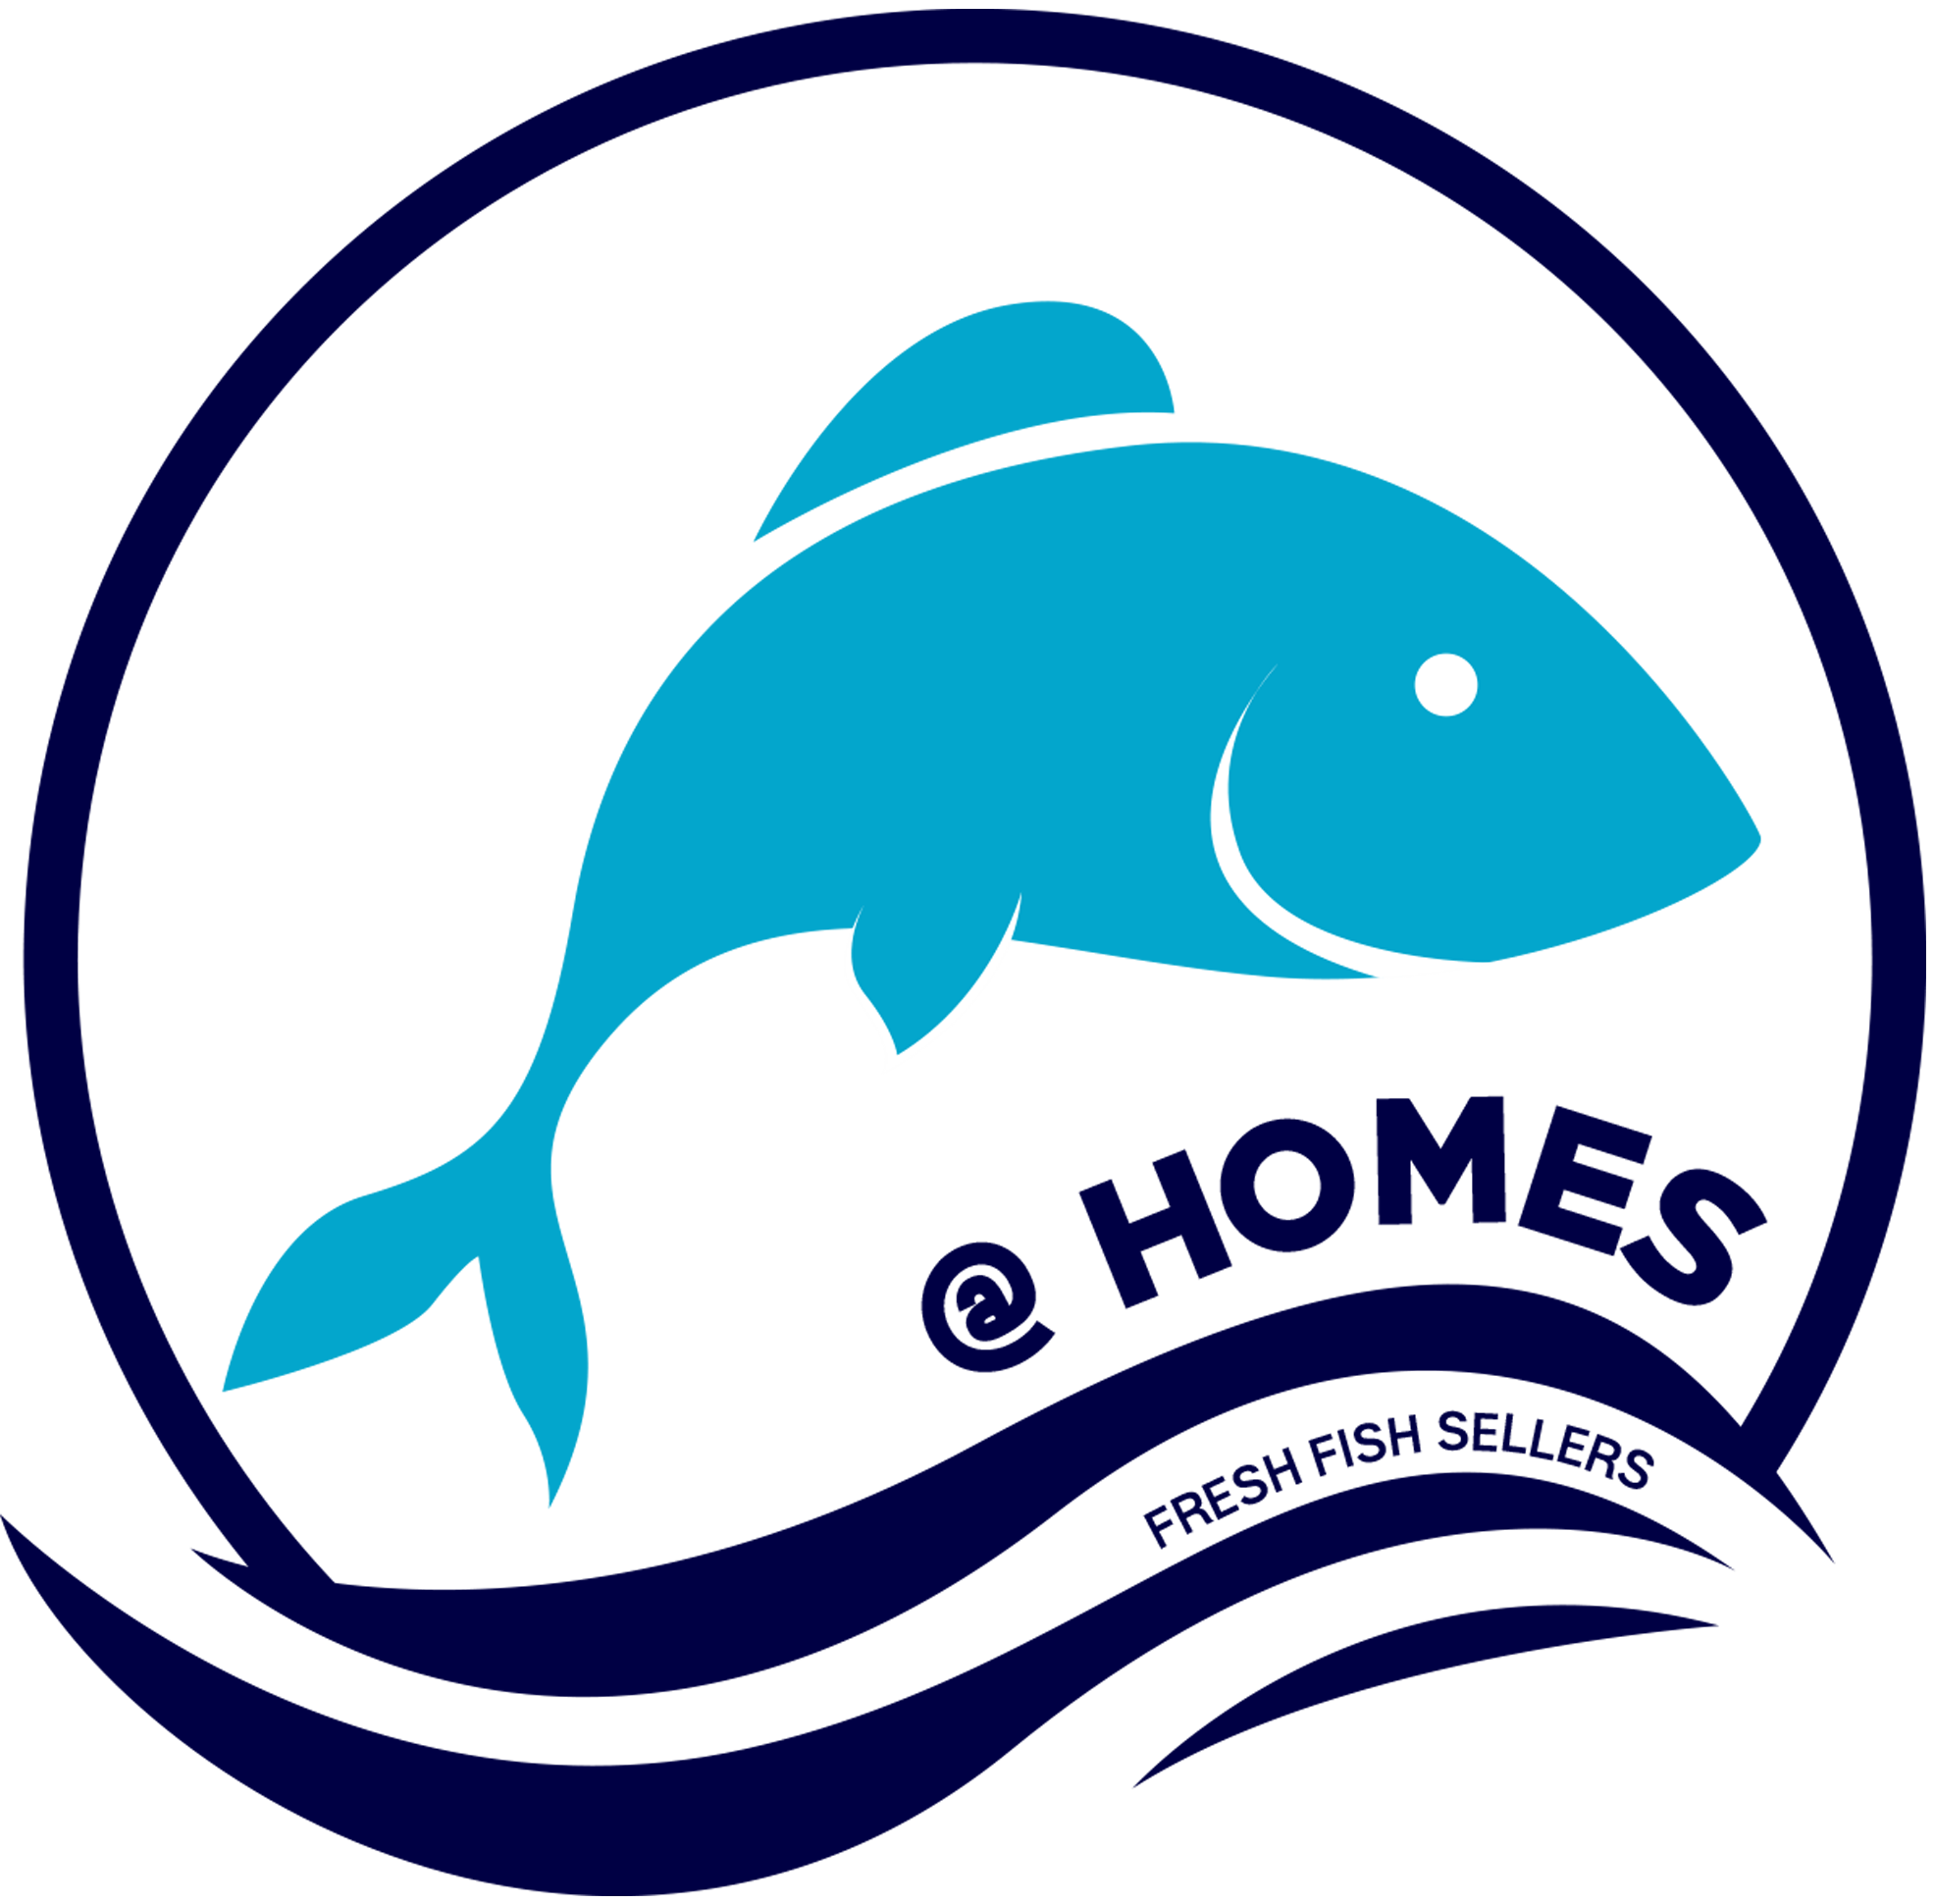 Tuna clipart fresh fish. Homes home products fishhomes